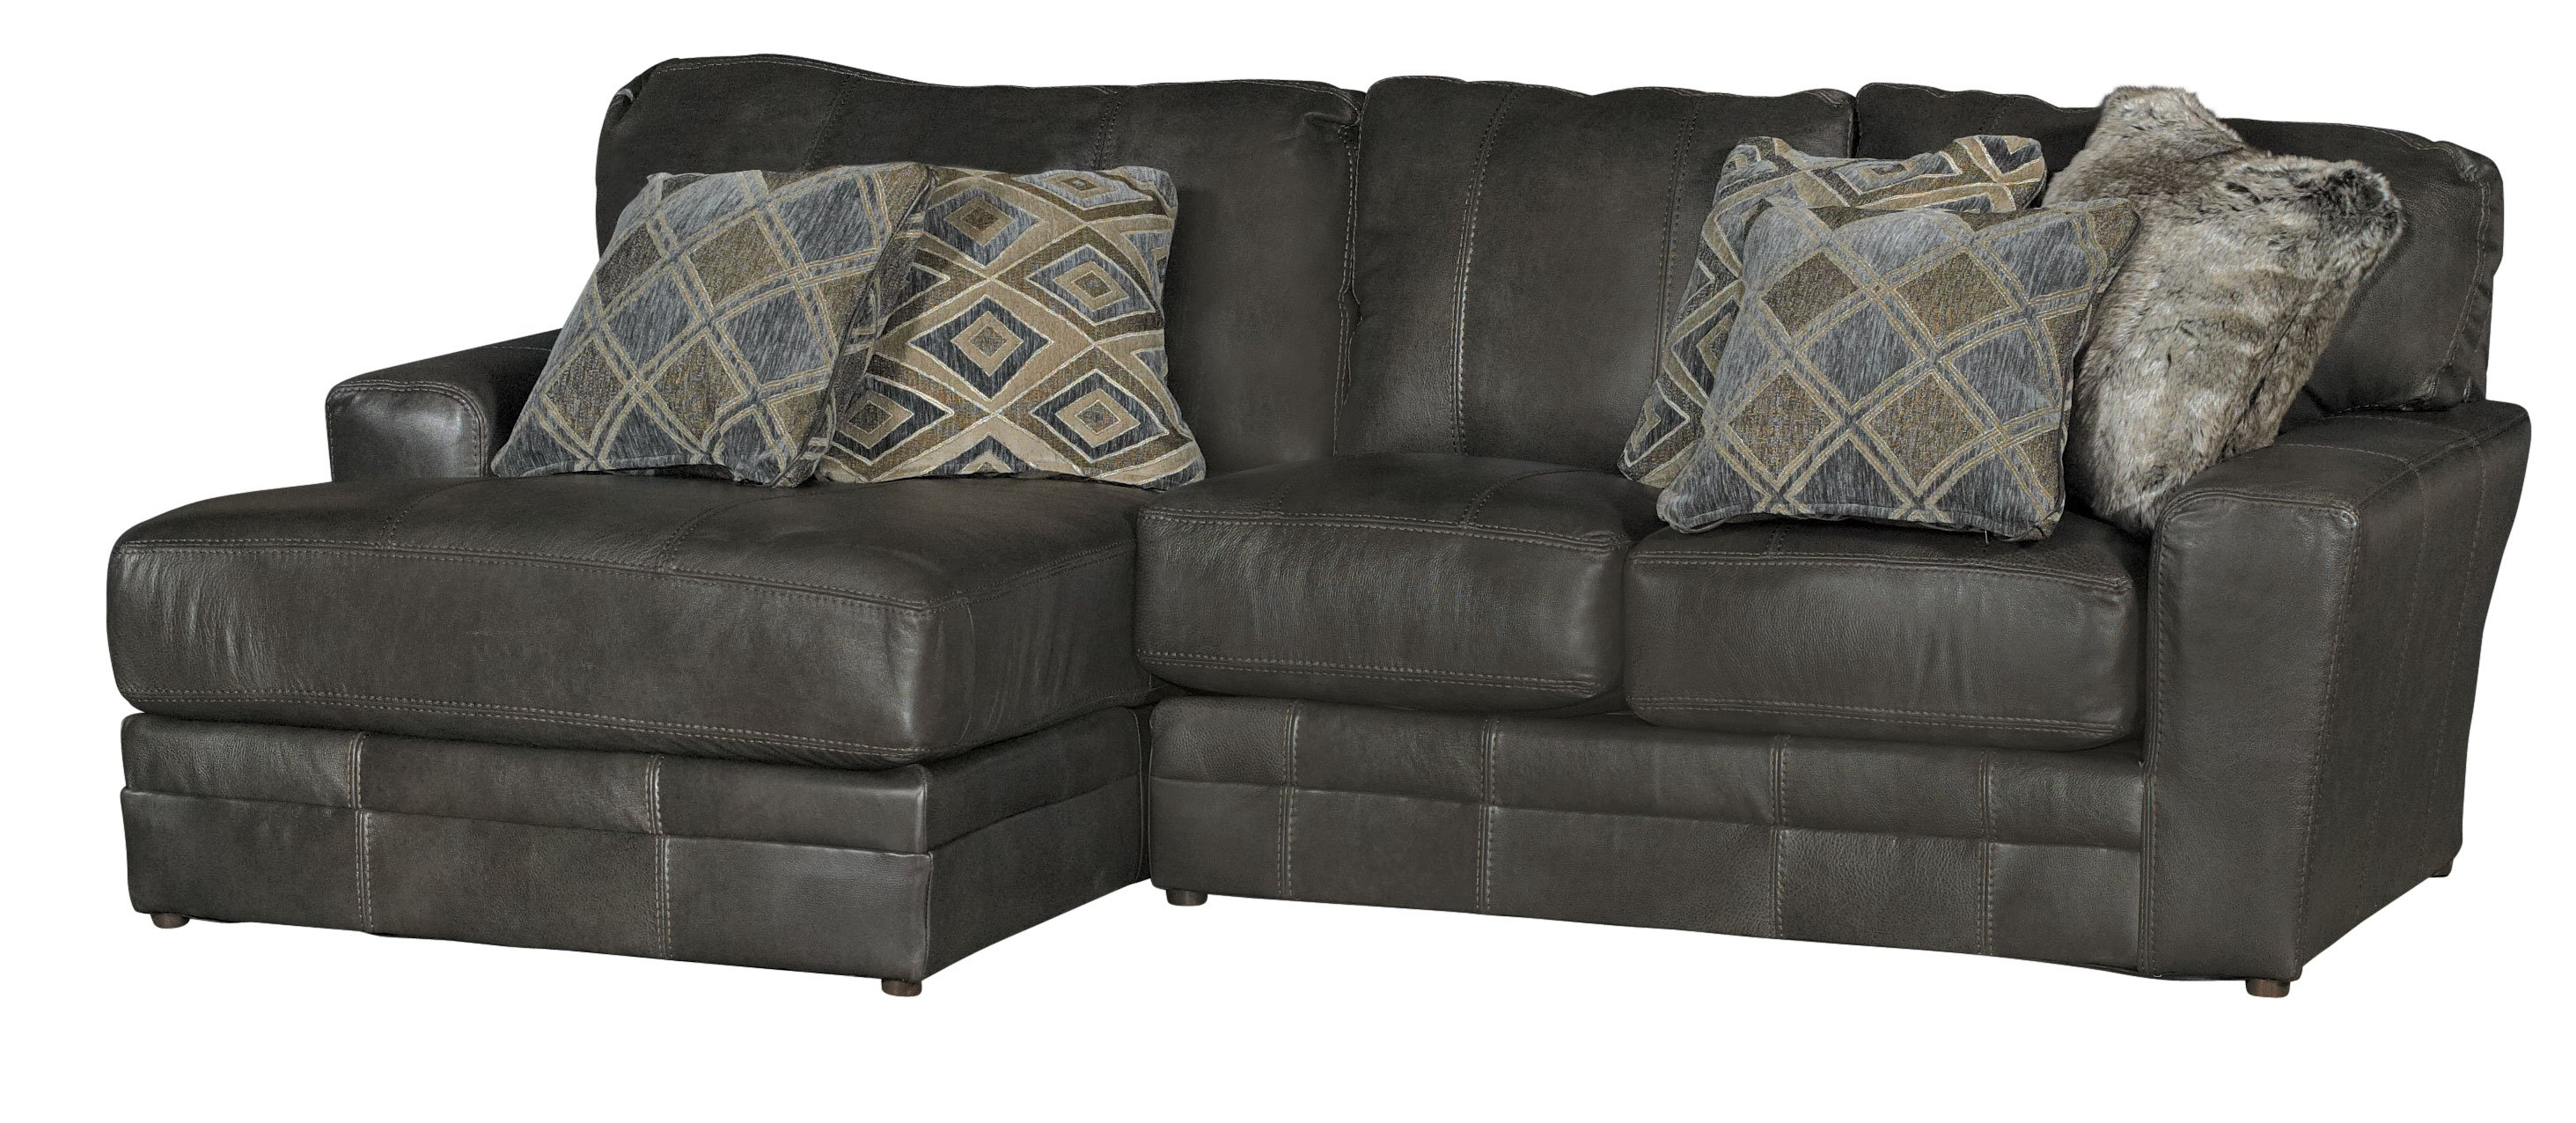 lift coffee willey patio rc buethe sectional top luxurious furniture beautiful gorgeous of best sofas table